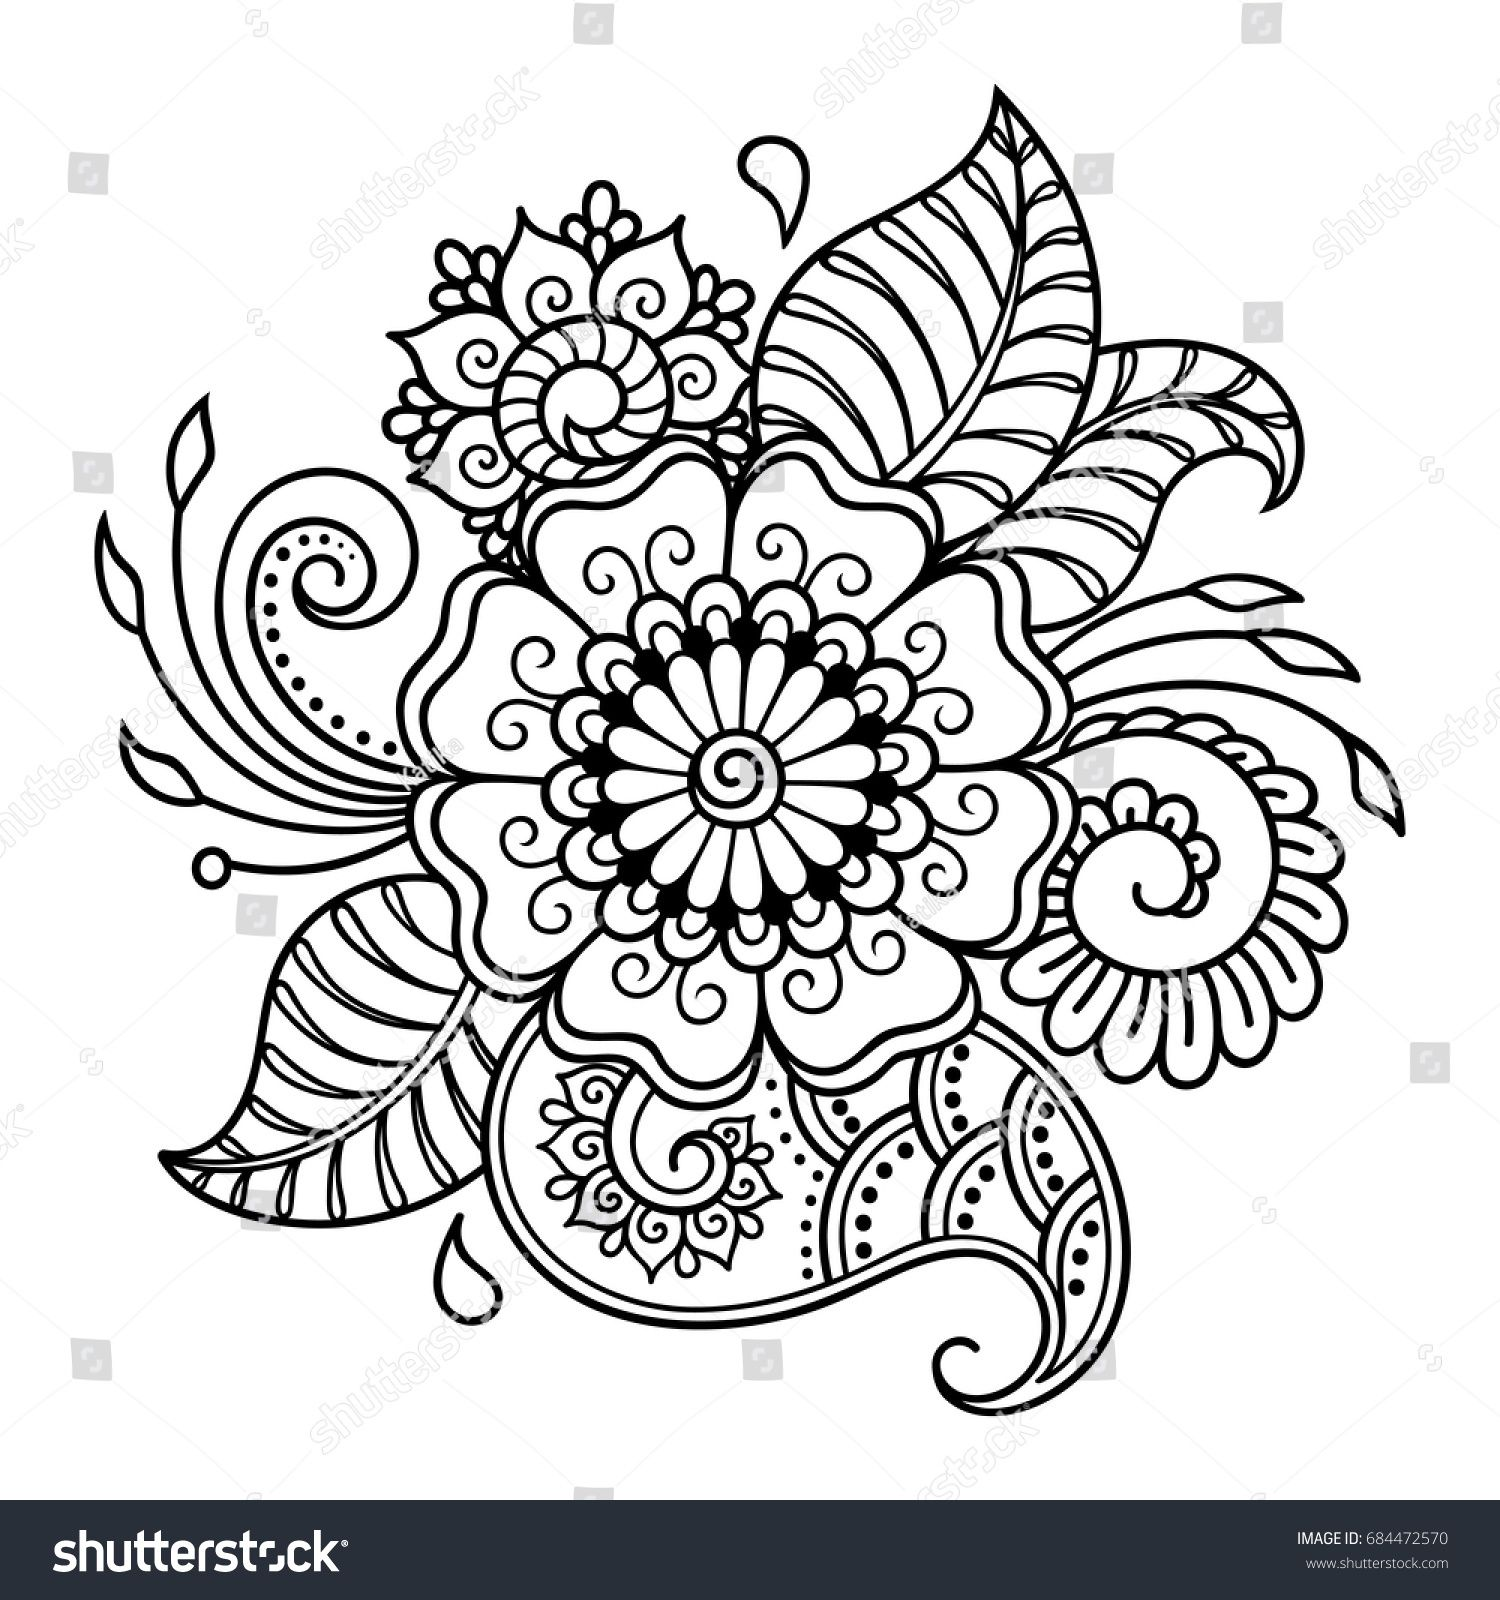 Henna tattoo flower template. Mehndi style. Set of